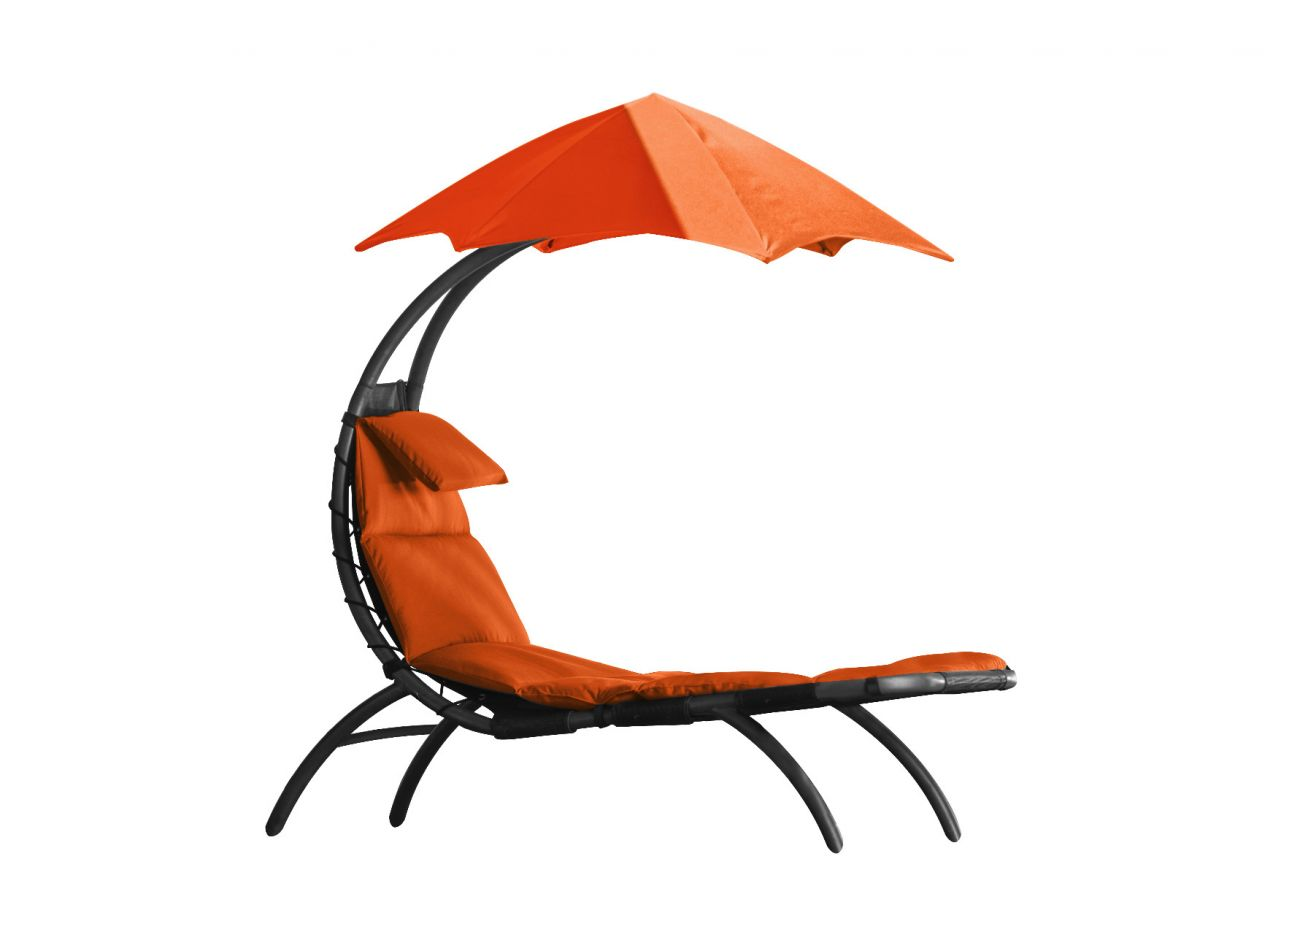 Original 1 Person Dream Lounger Orange